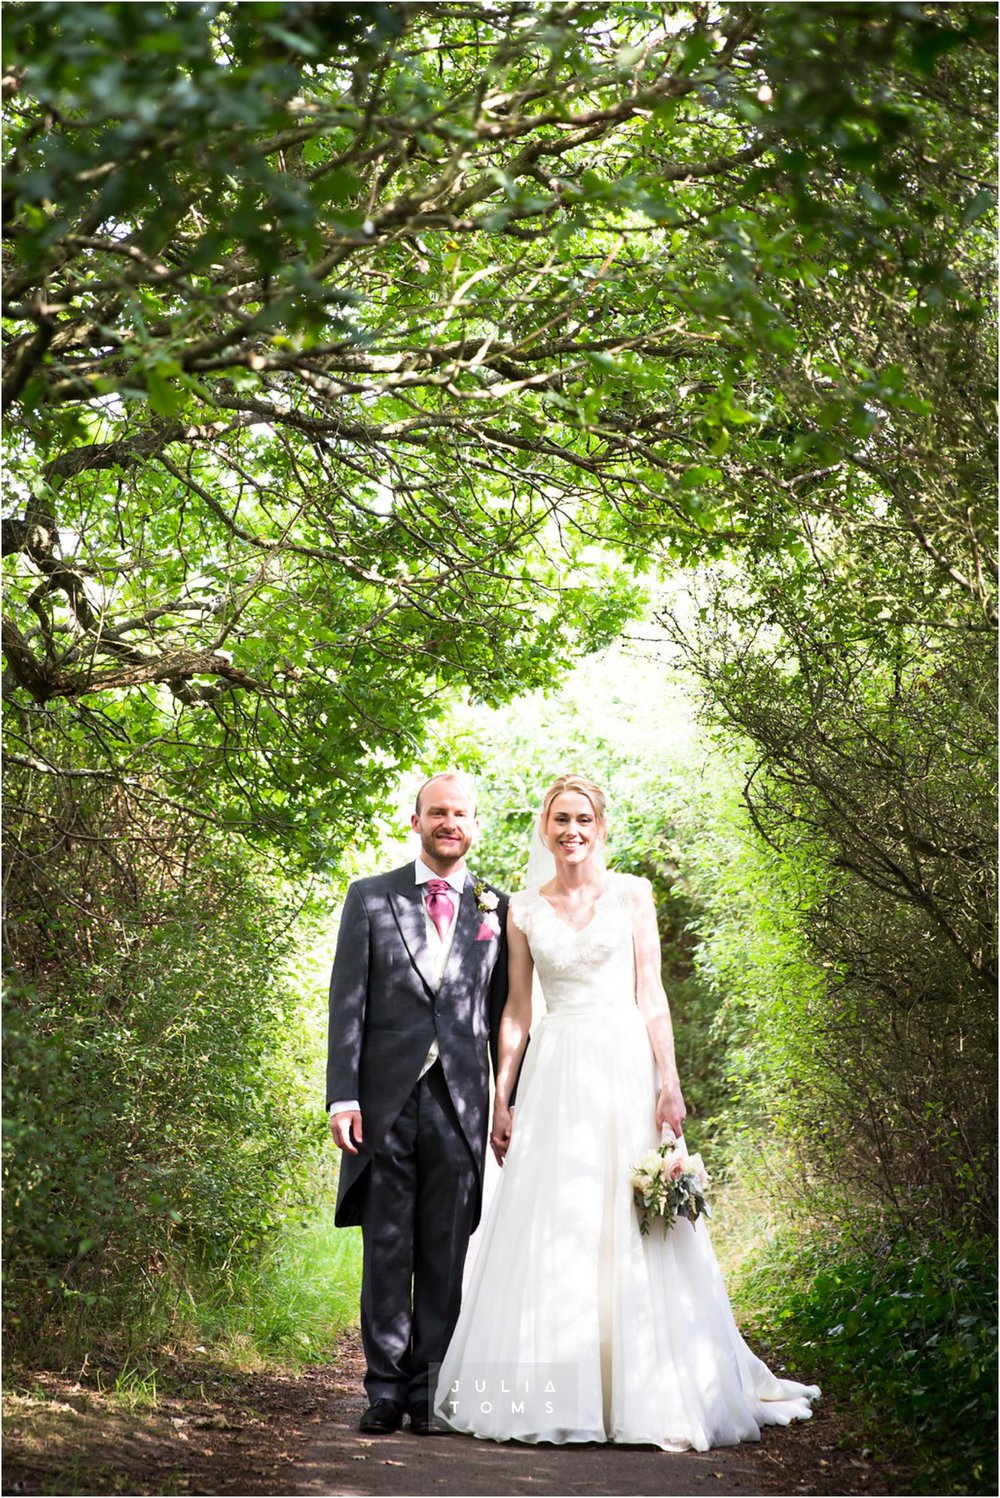 itchenor_wedding_chichester_photographer_041.jpg